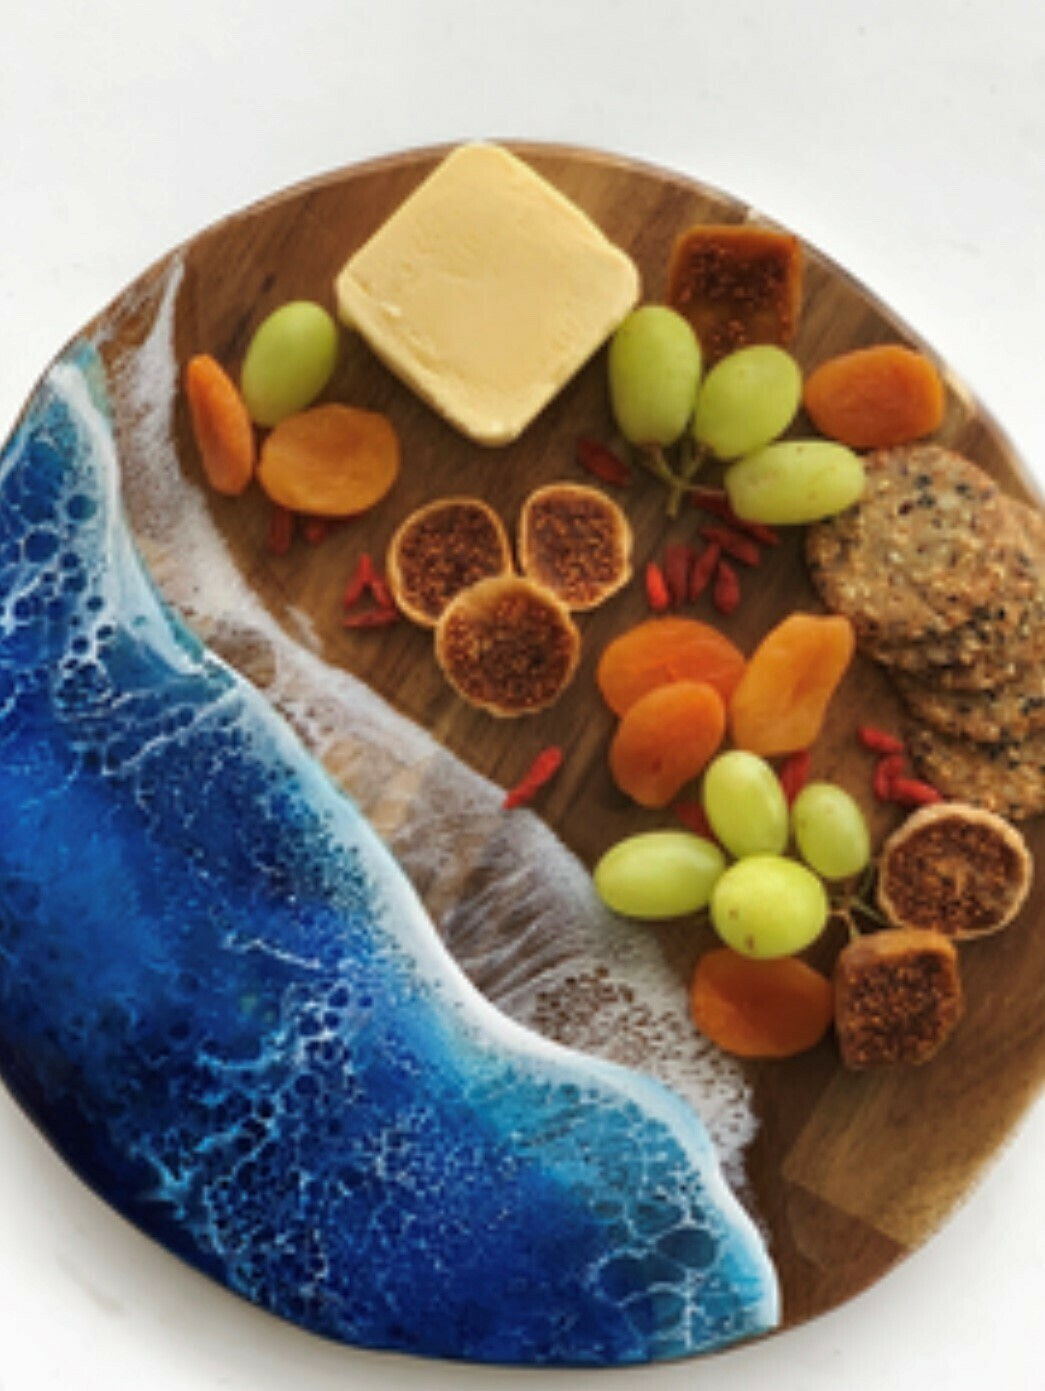 Willow & SeaAlmost Round grazing board